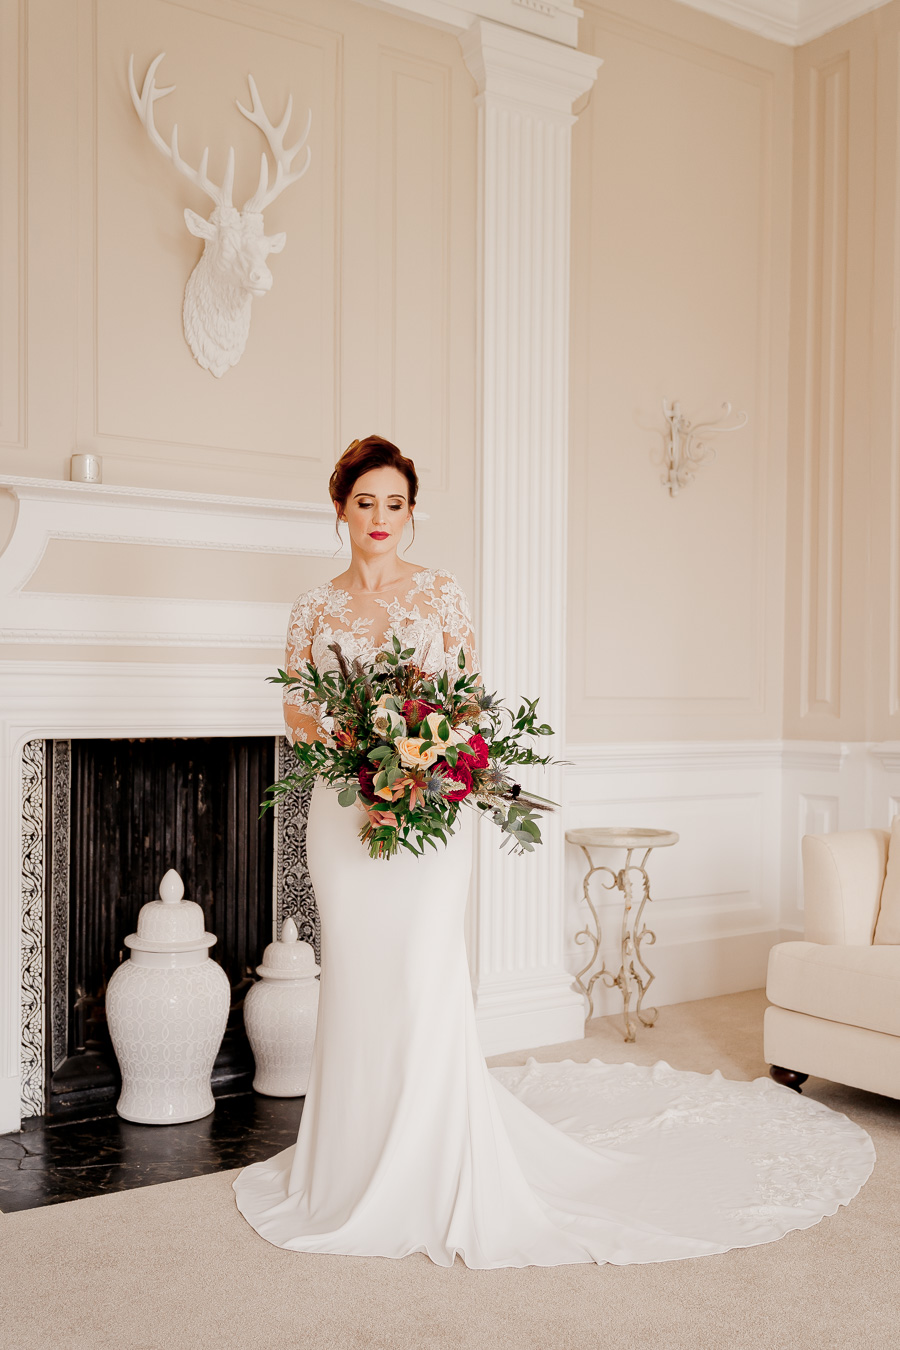 Elegance and glamour, Vanity Fair style. A styled wedding photoshoot from Davenport House. Image Laura May Photography (18)